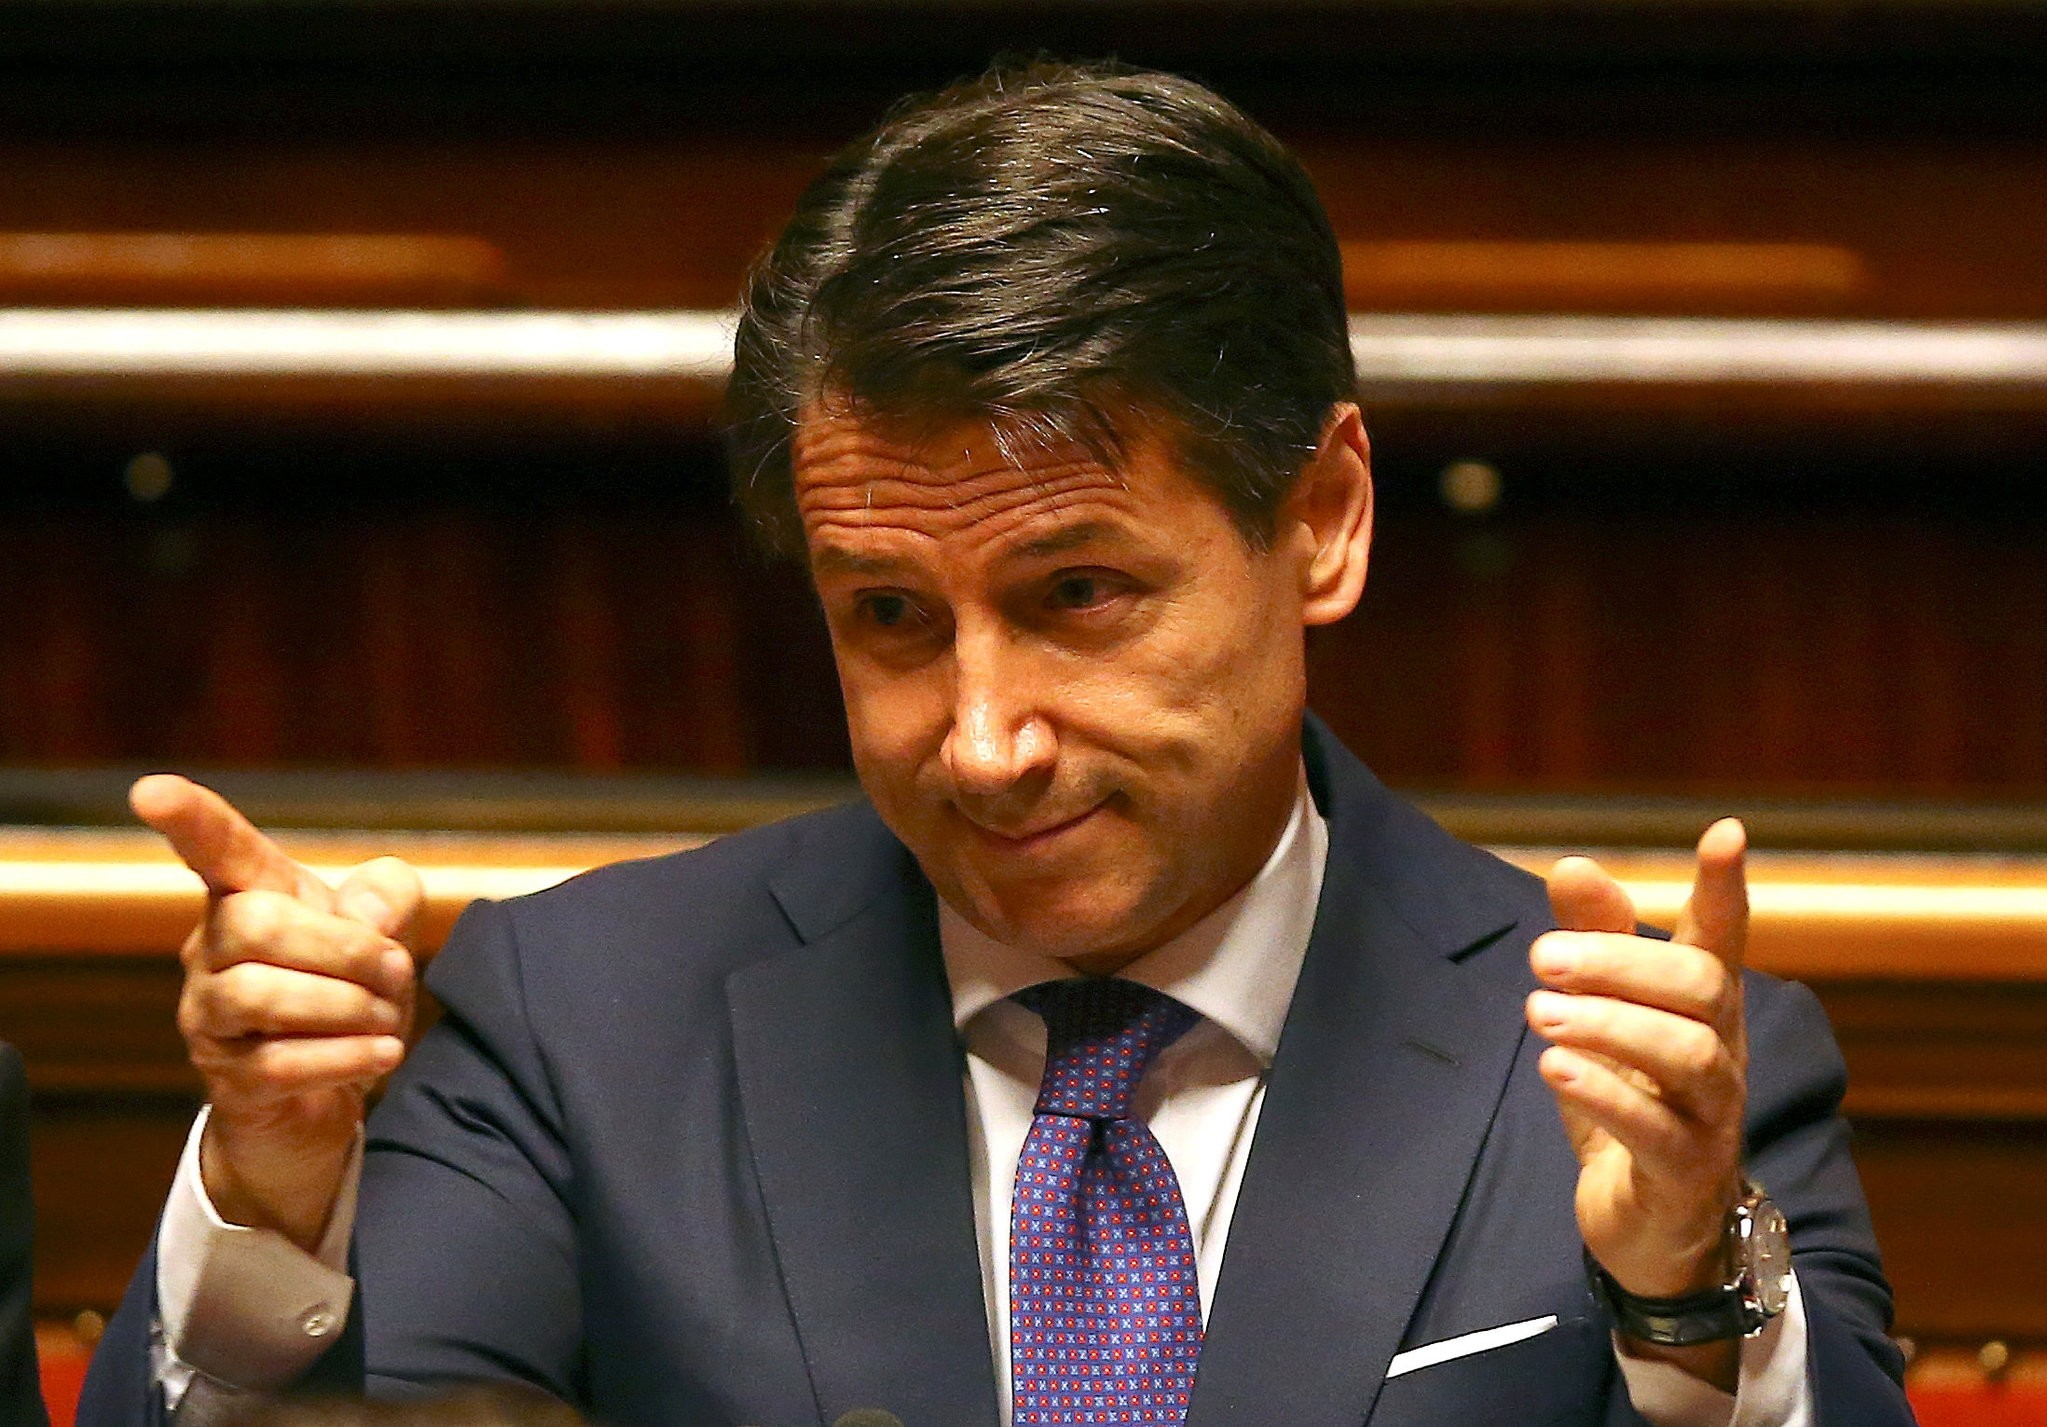 Newly appointed Italian Prime Minister Giuseppe Conte gestures during his first session at the Senate in Rome, Italy, June 5.